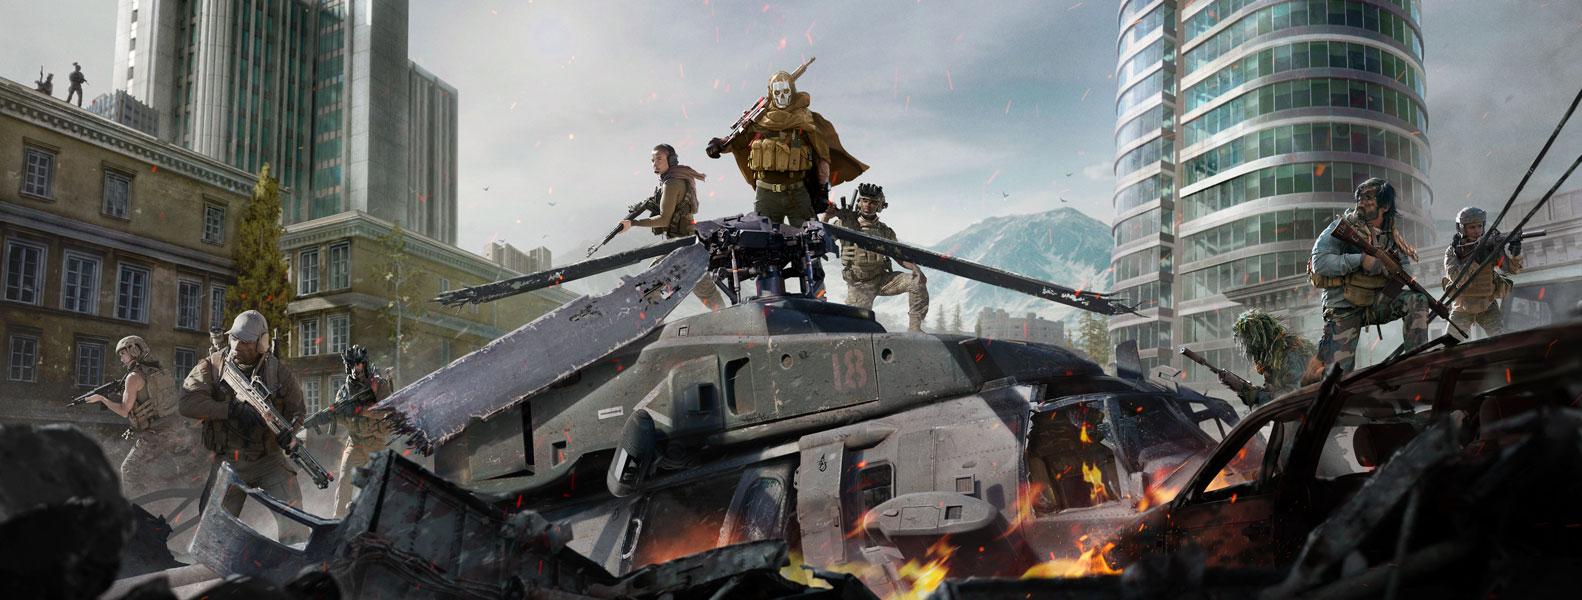 Ghost from Call of Duty: Modern Warfare in skull mask and stealth gear on top of a crashed helicopter with several other characters